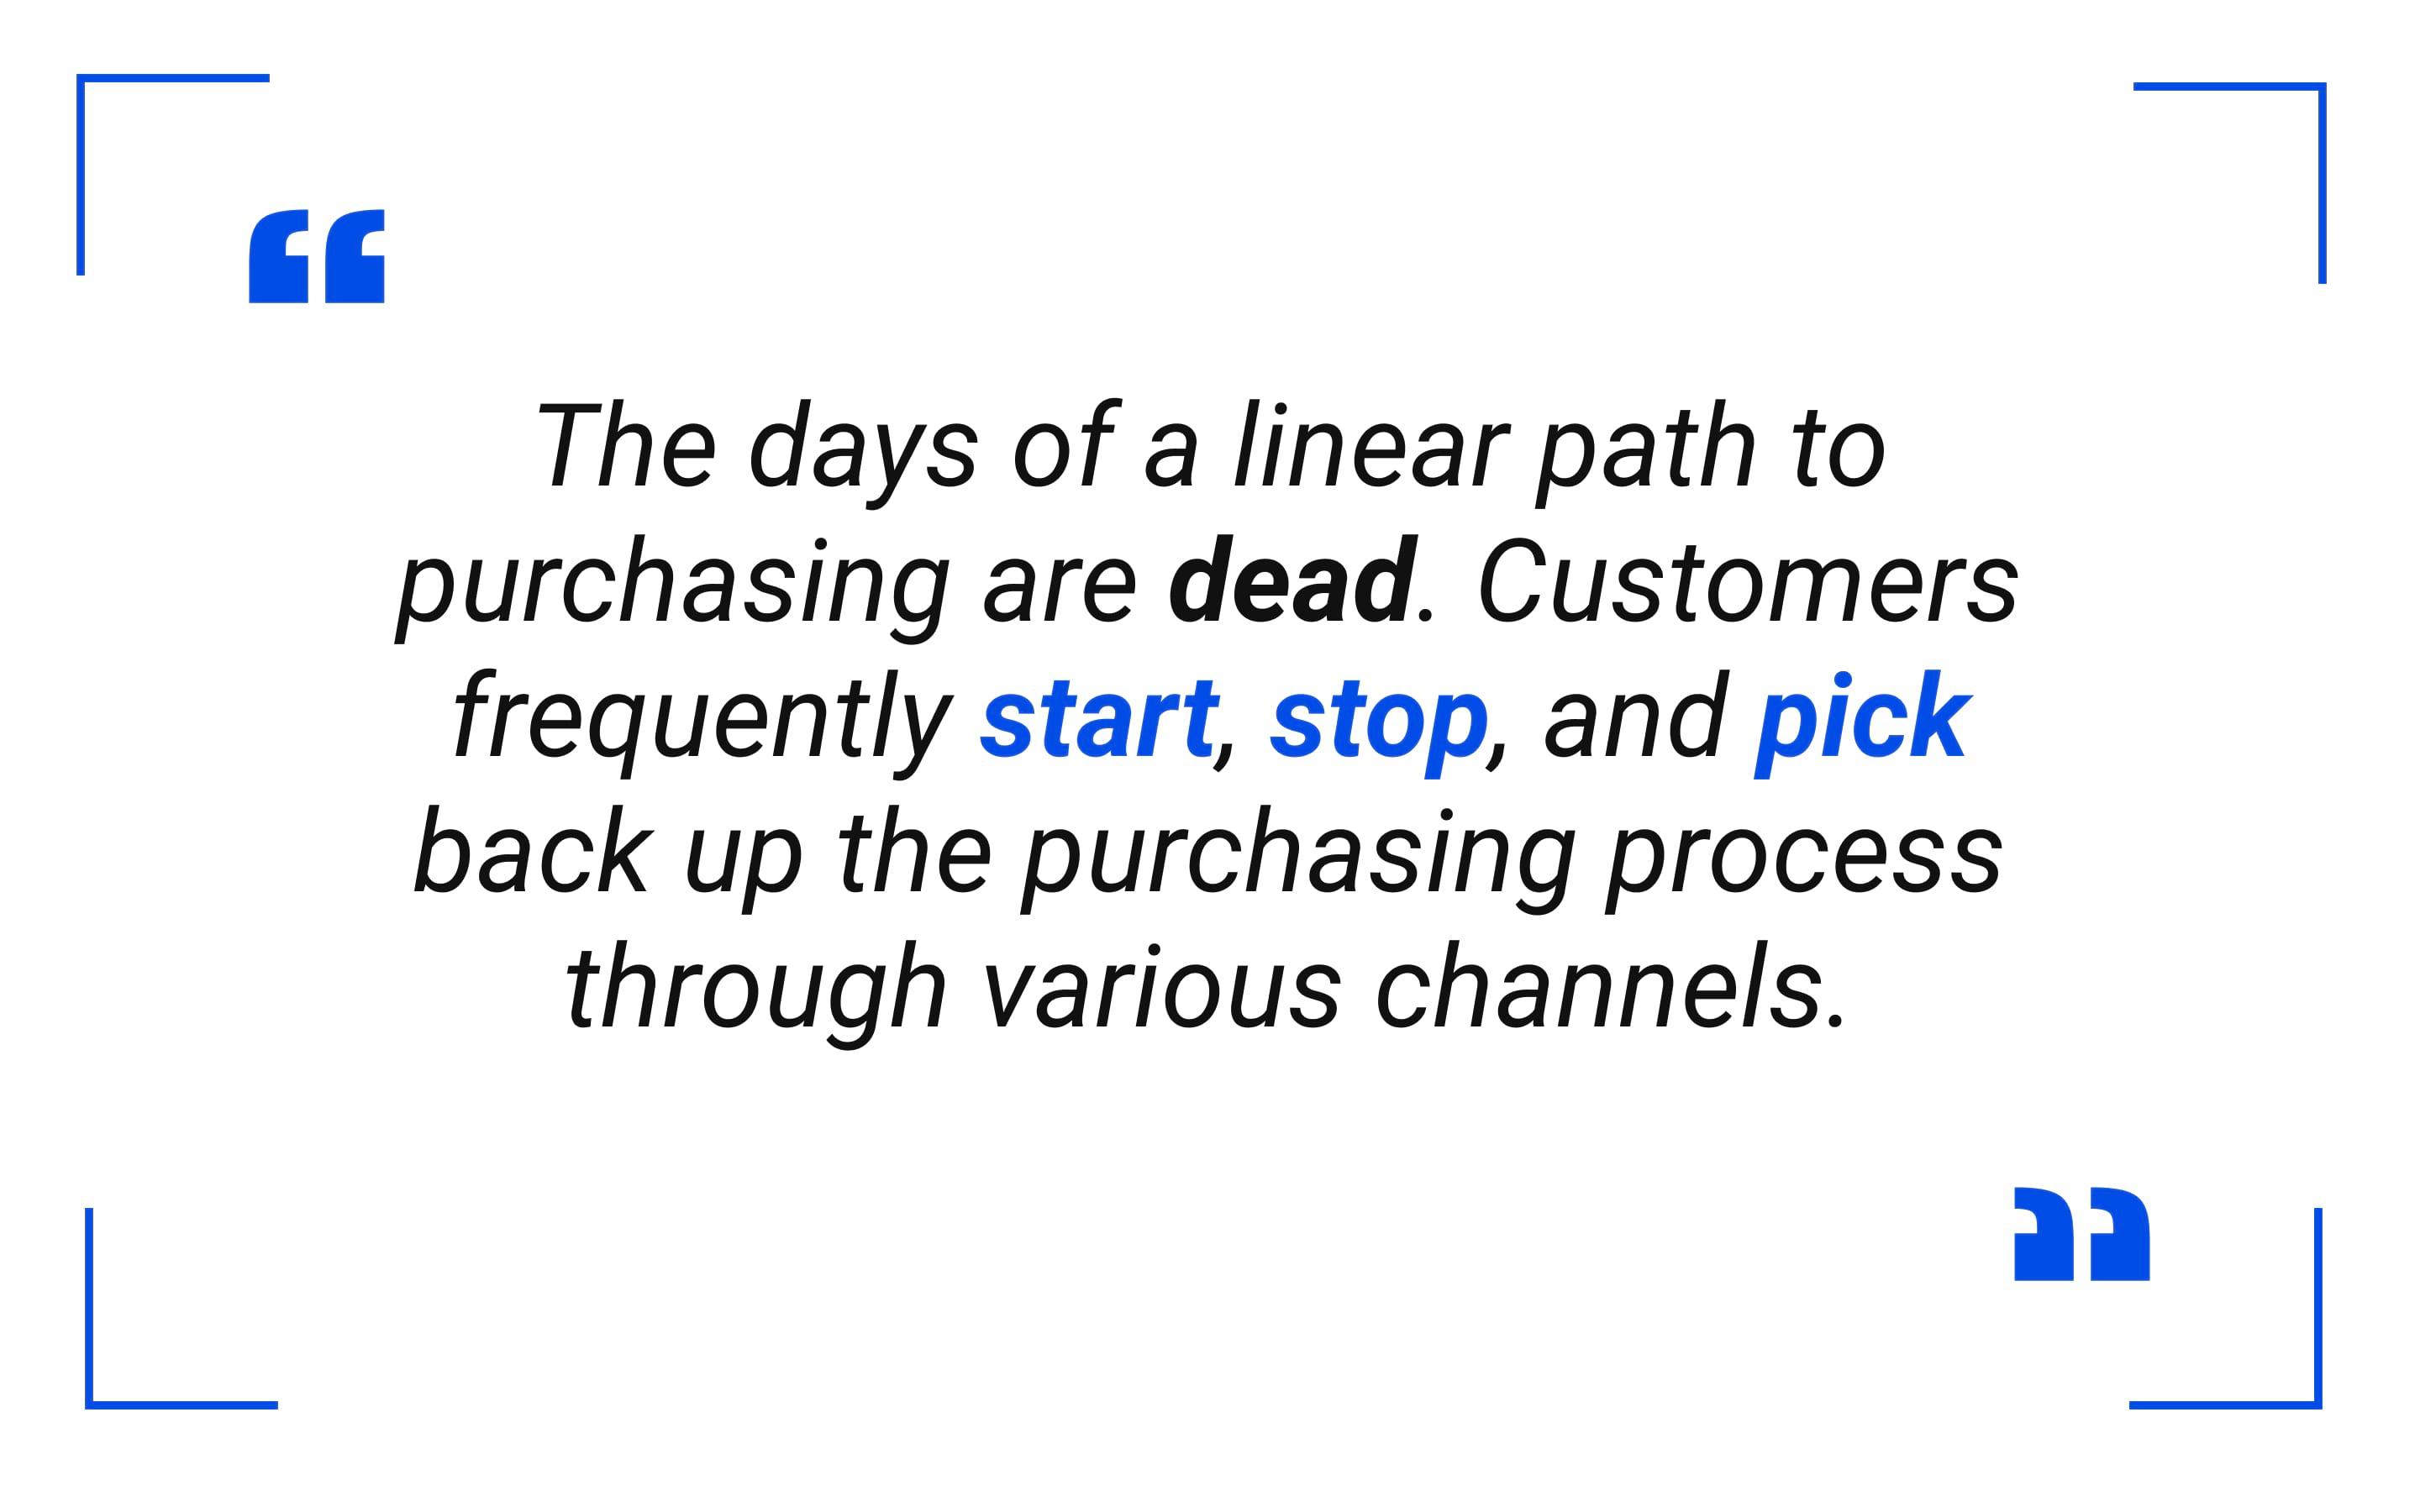 The days of a linear path to purchasing are dead.